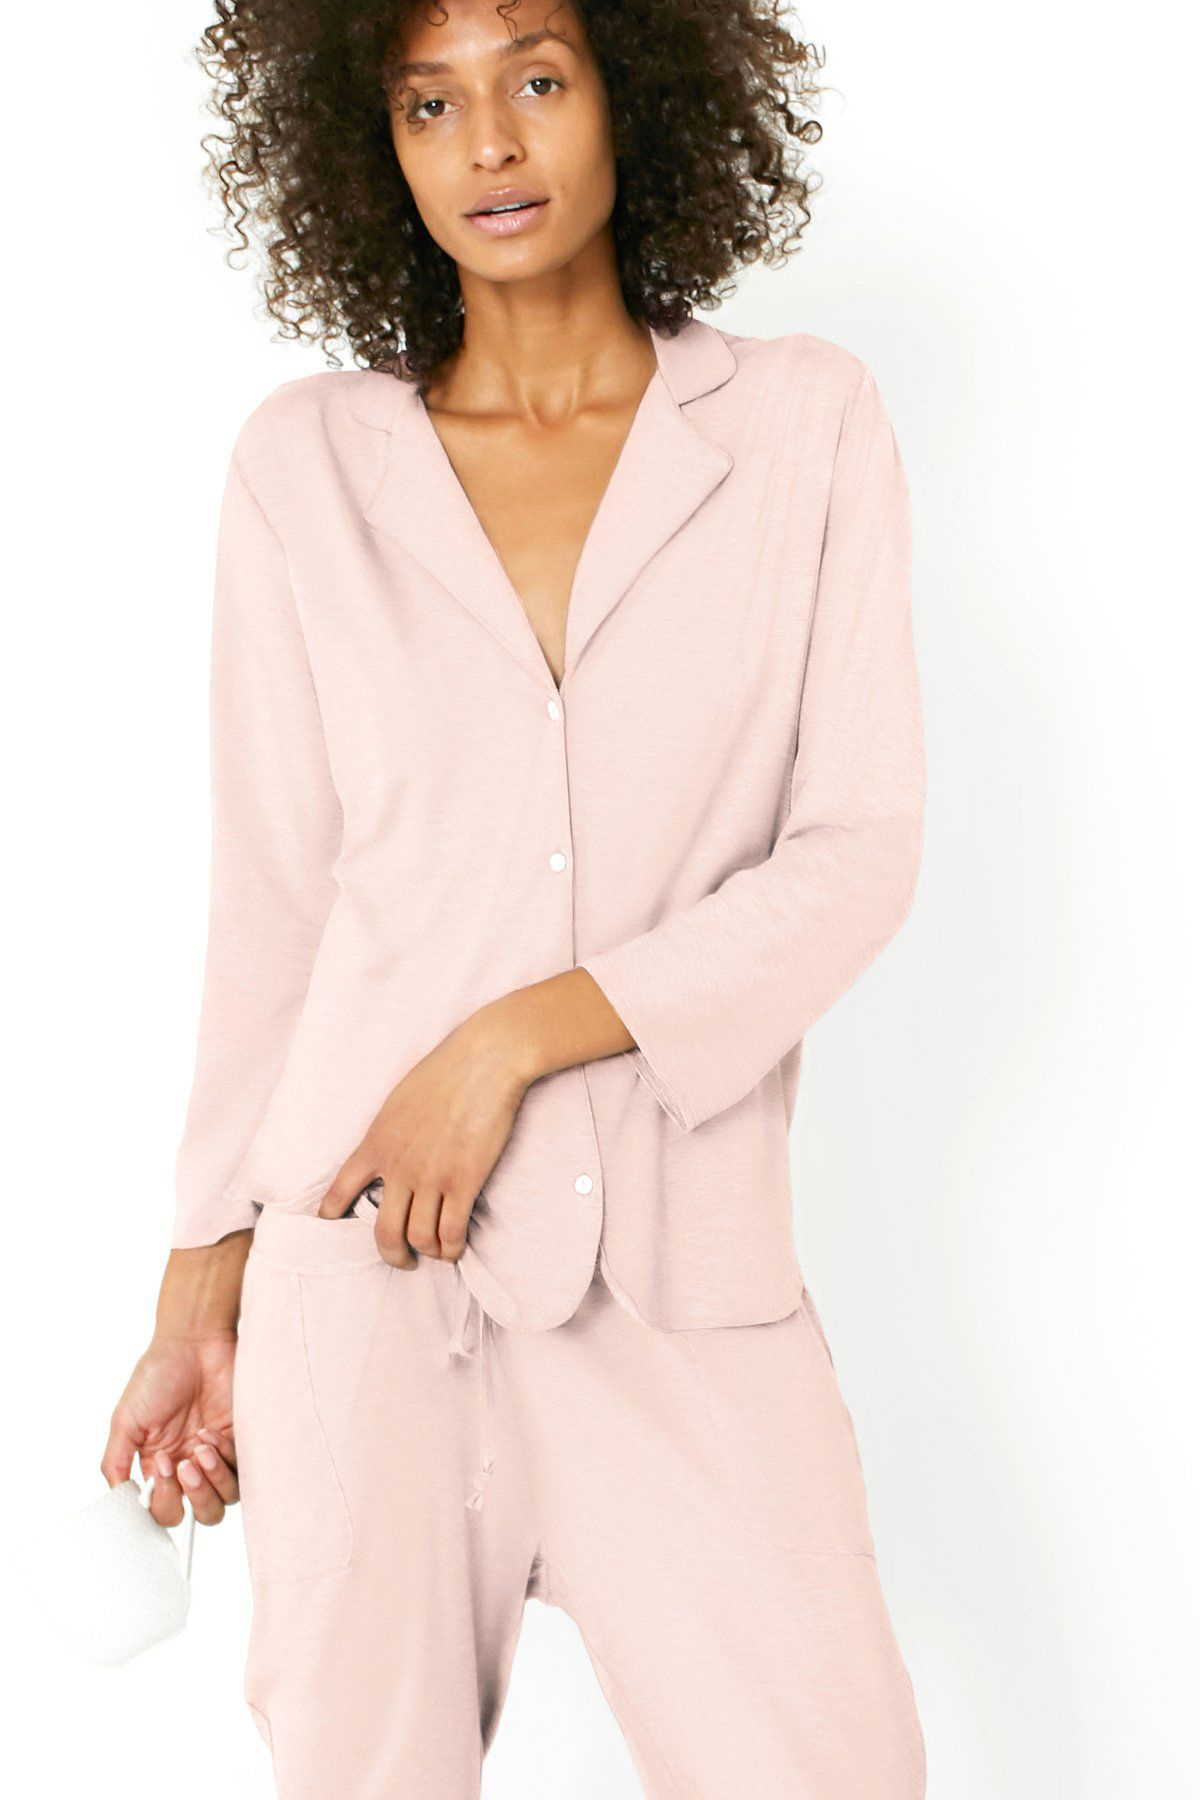 Recliner NYC Classic PJ Set in Blush